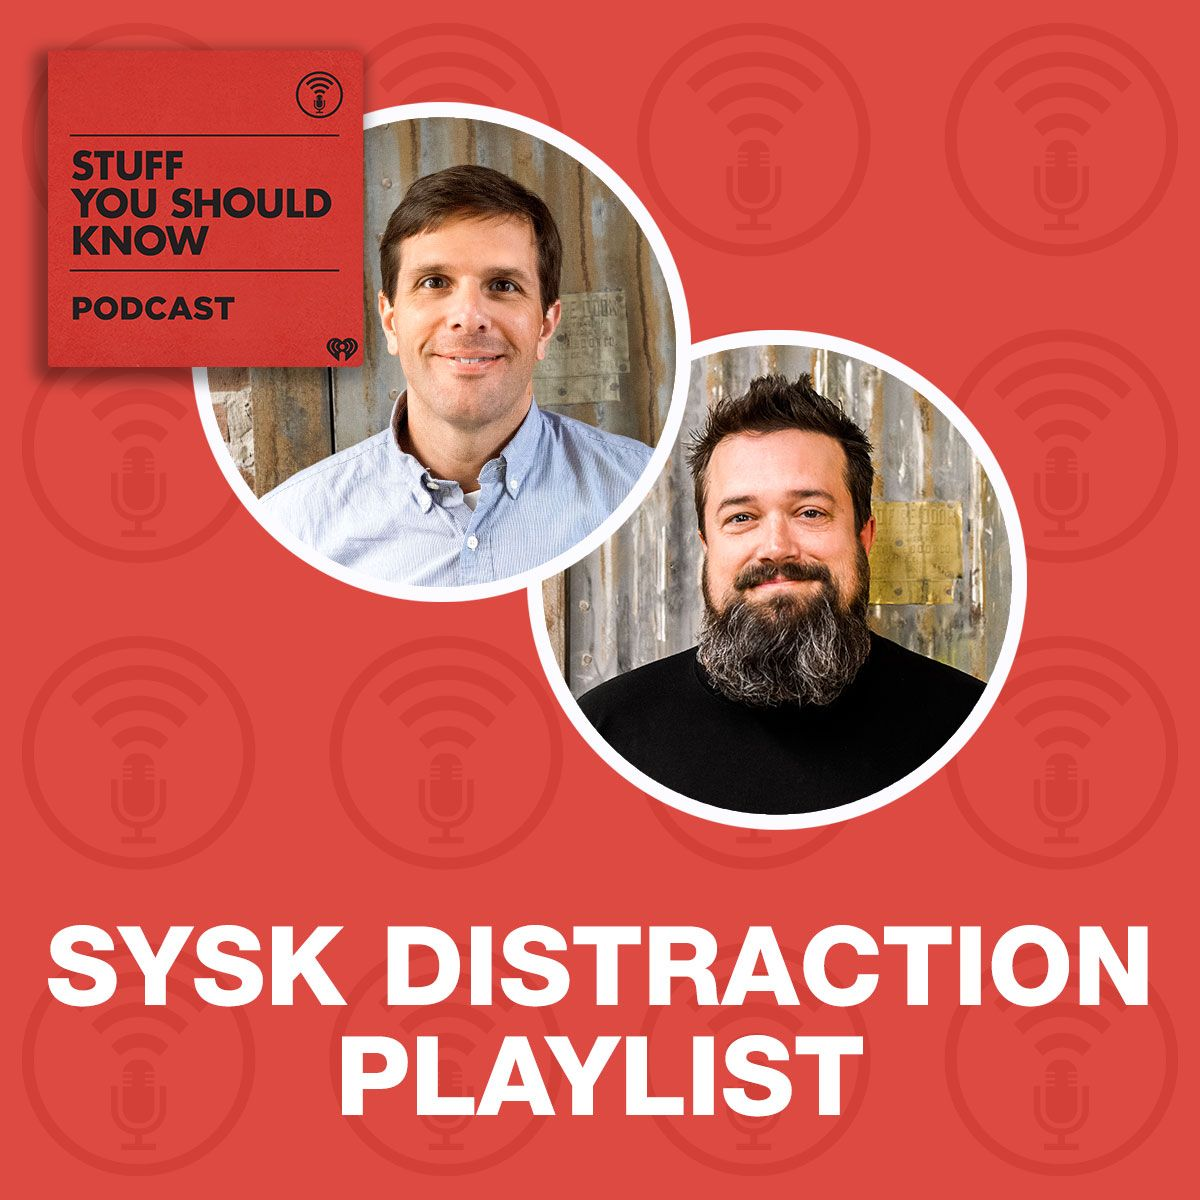 SYSK Distraction Playlist: Sugar: It Powers the Earth